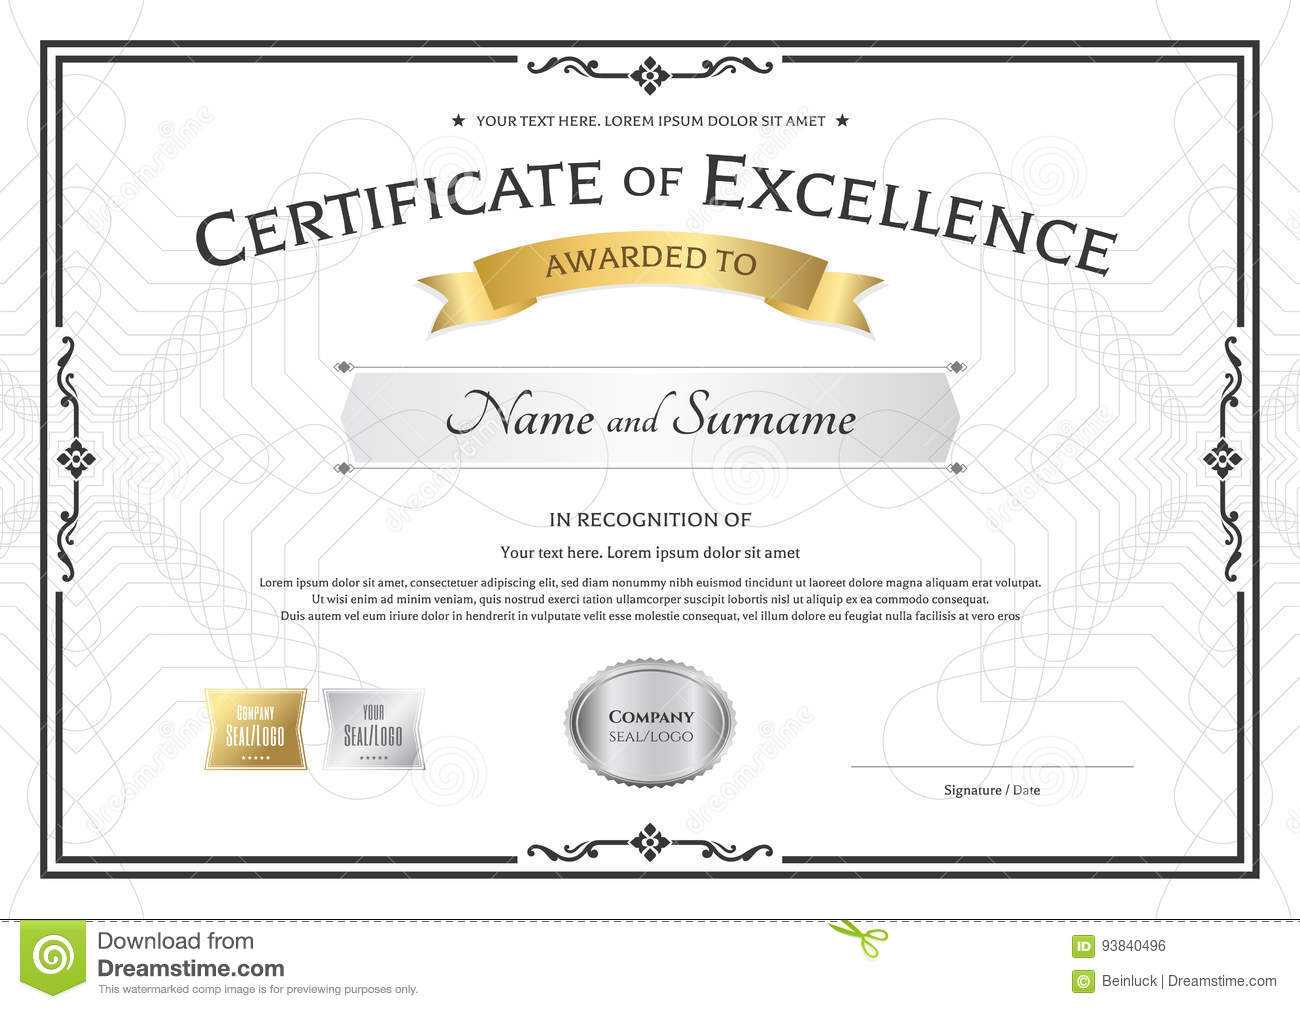 Certificate Of Excellence Template With Gold Award Ribbon On With Regard To Award Of Excellence Certificate Template